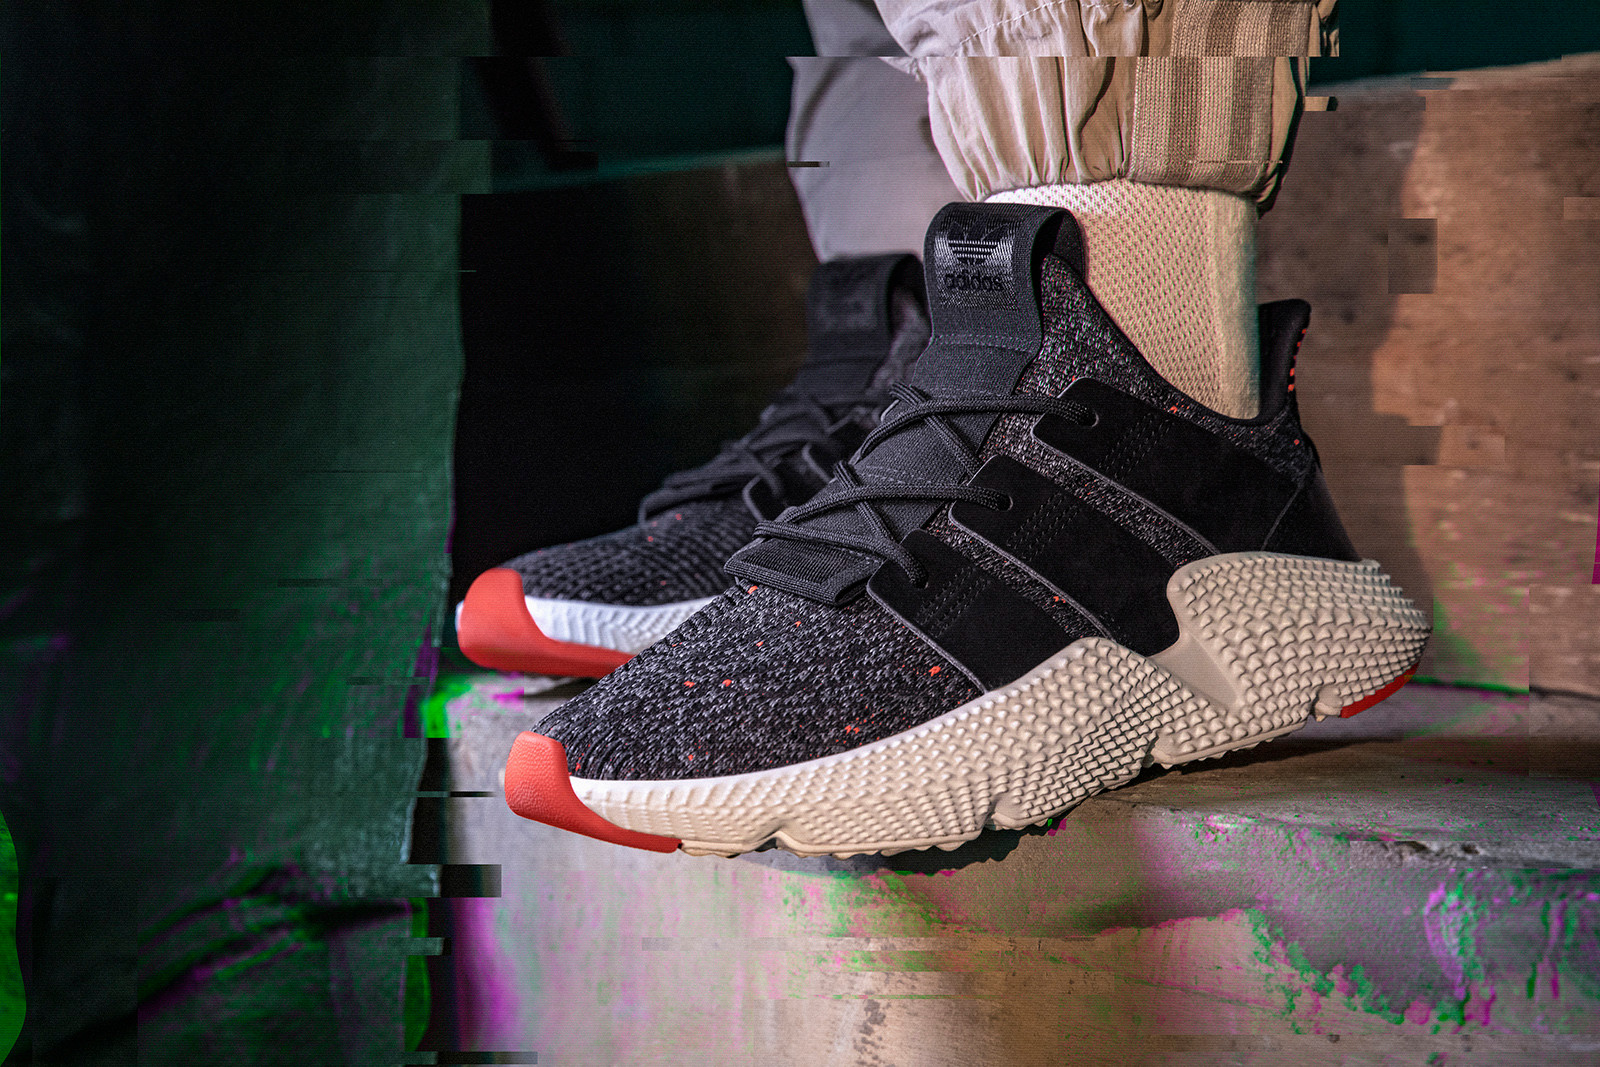 prophere style